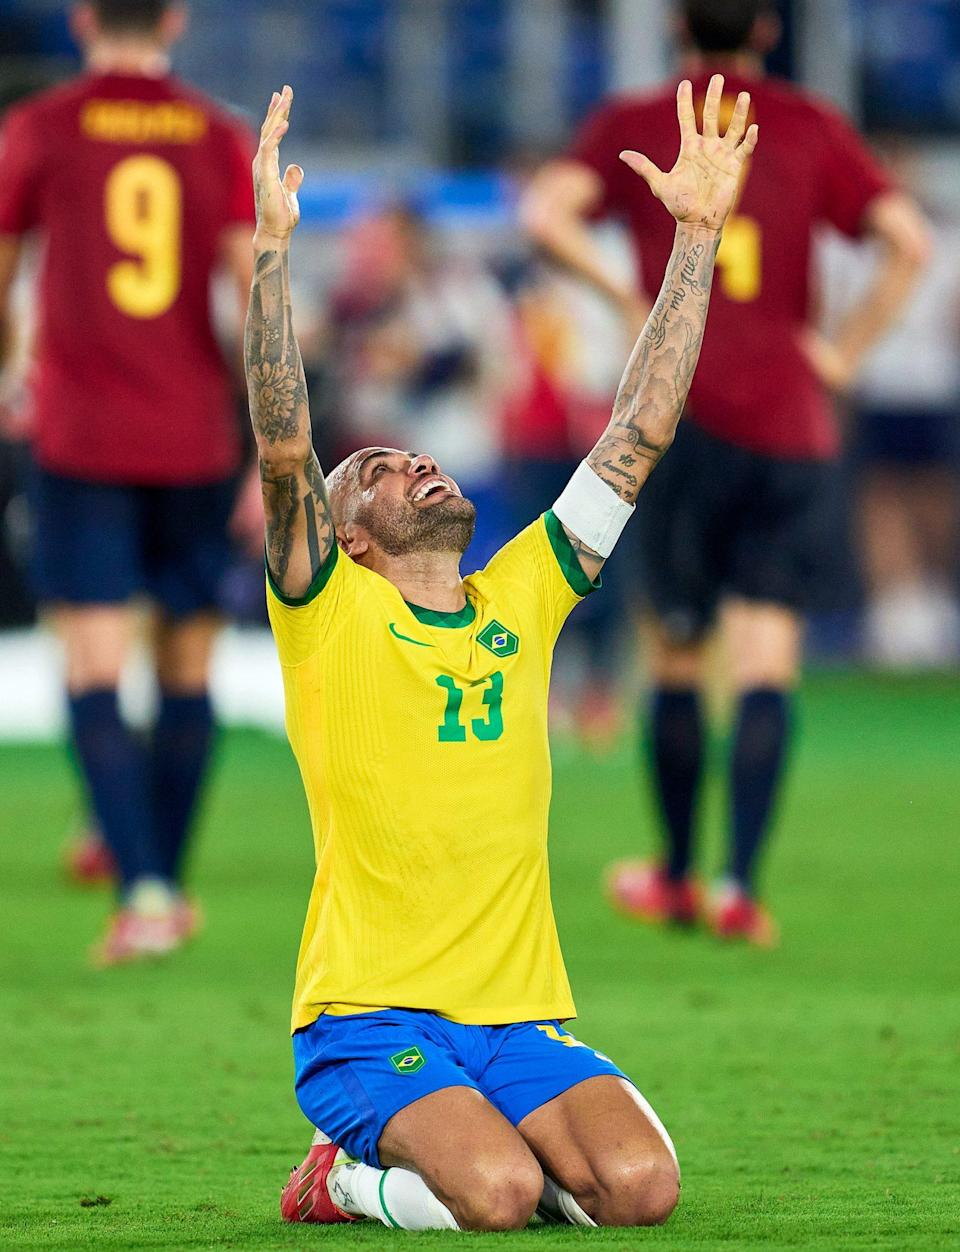 <p>Dani Alves of Team Brazil celebrates victory after the Men's Gold Medal Soccer Match between Team Brazil and Team Spain. </p>